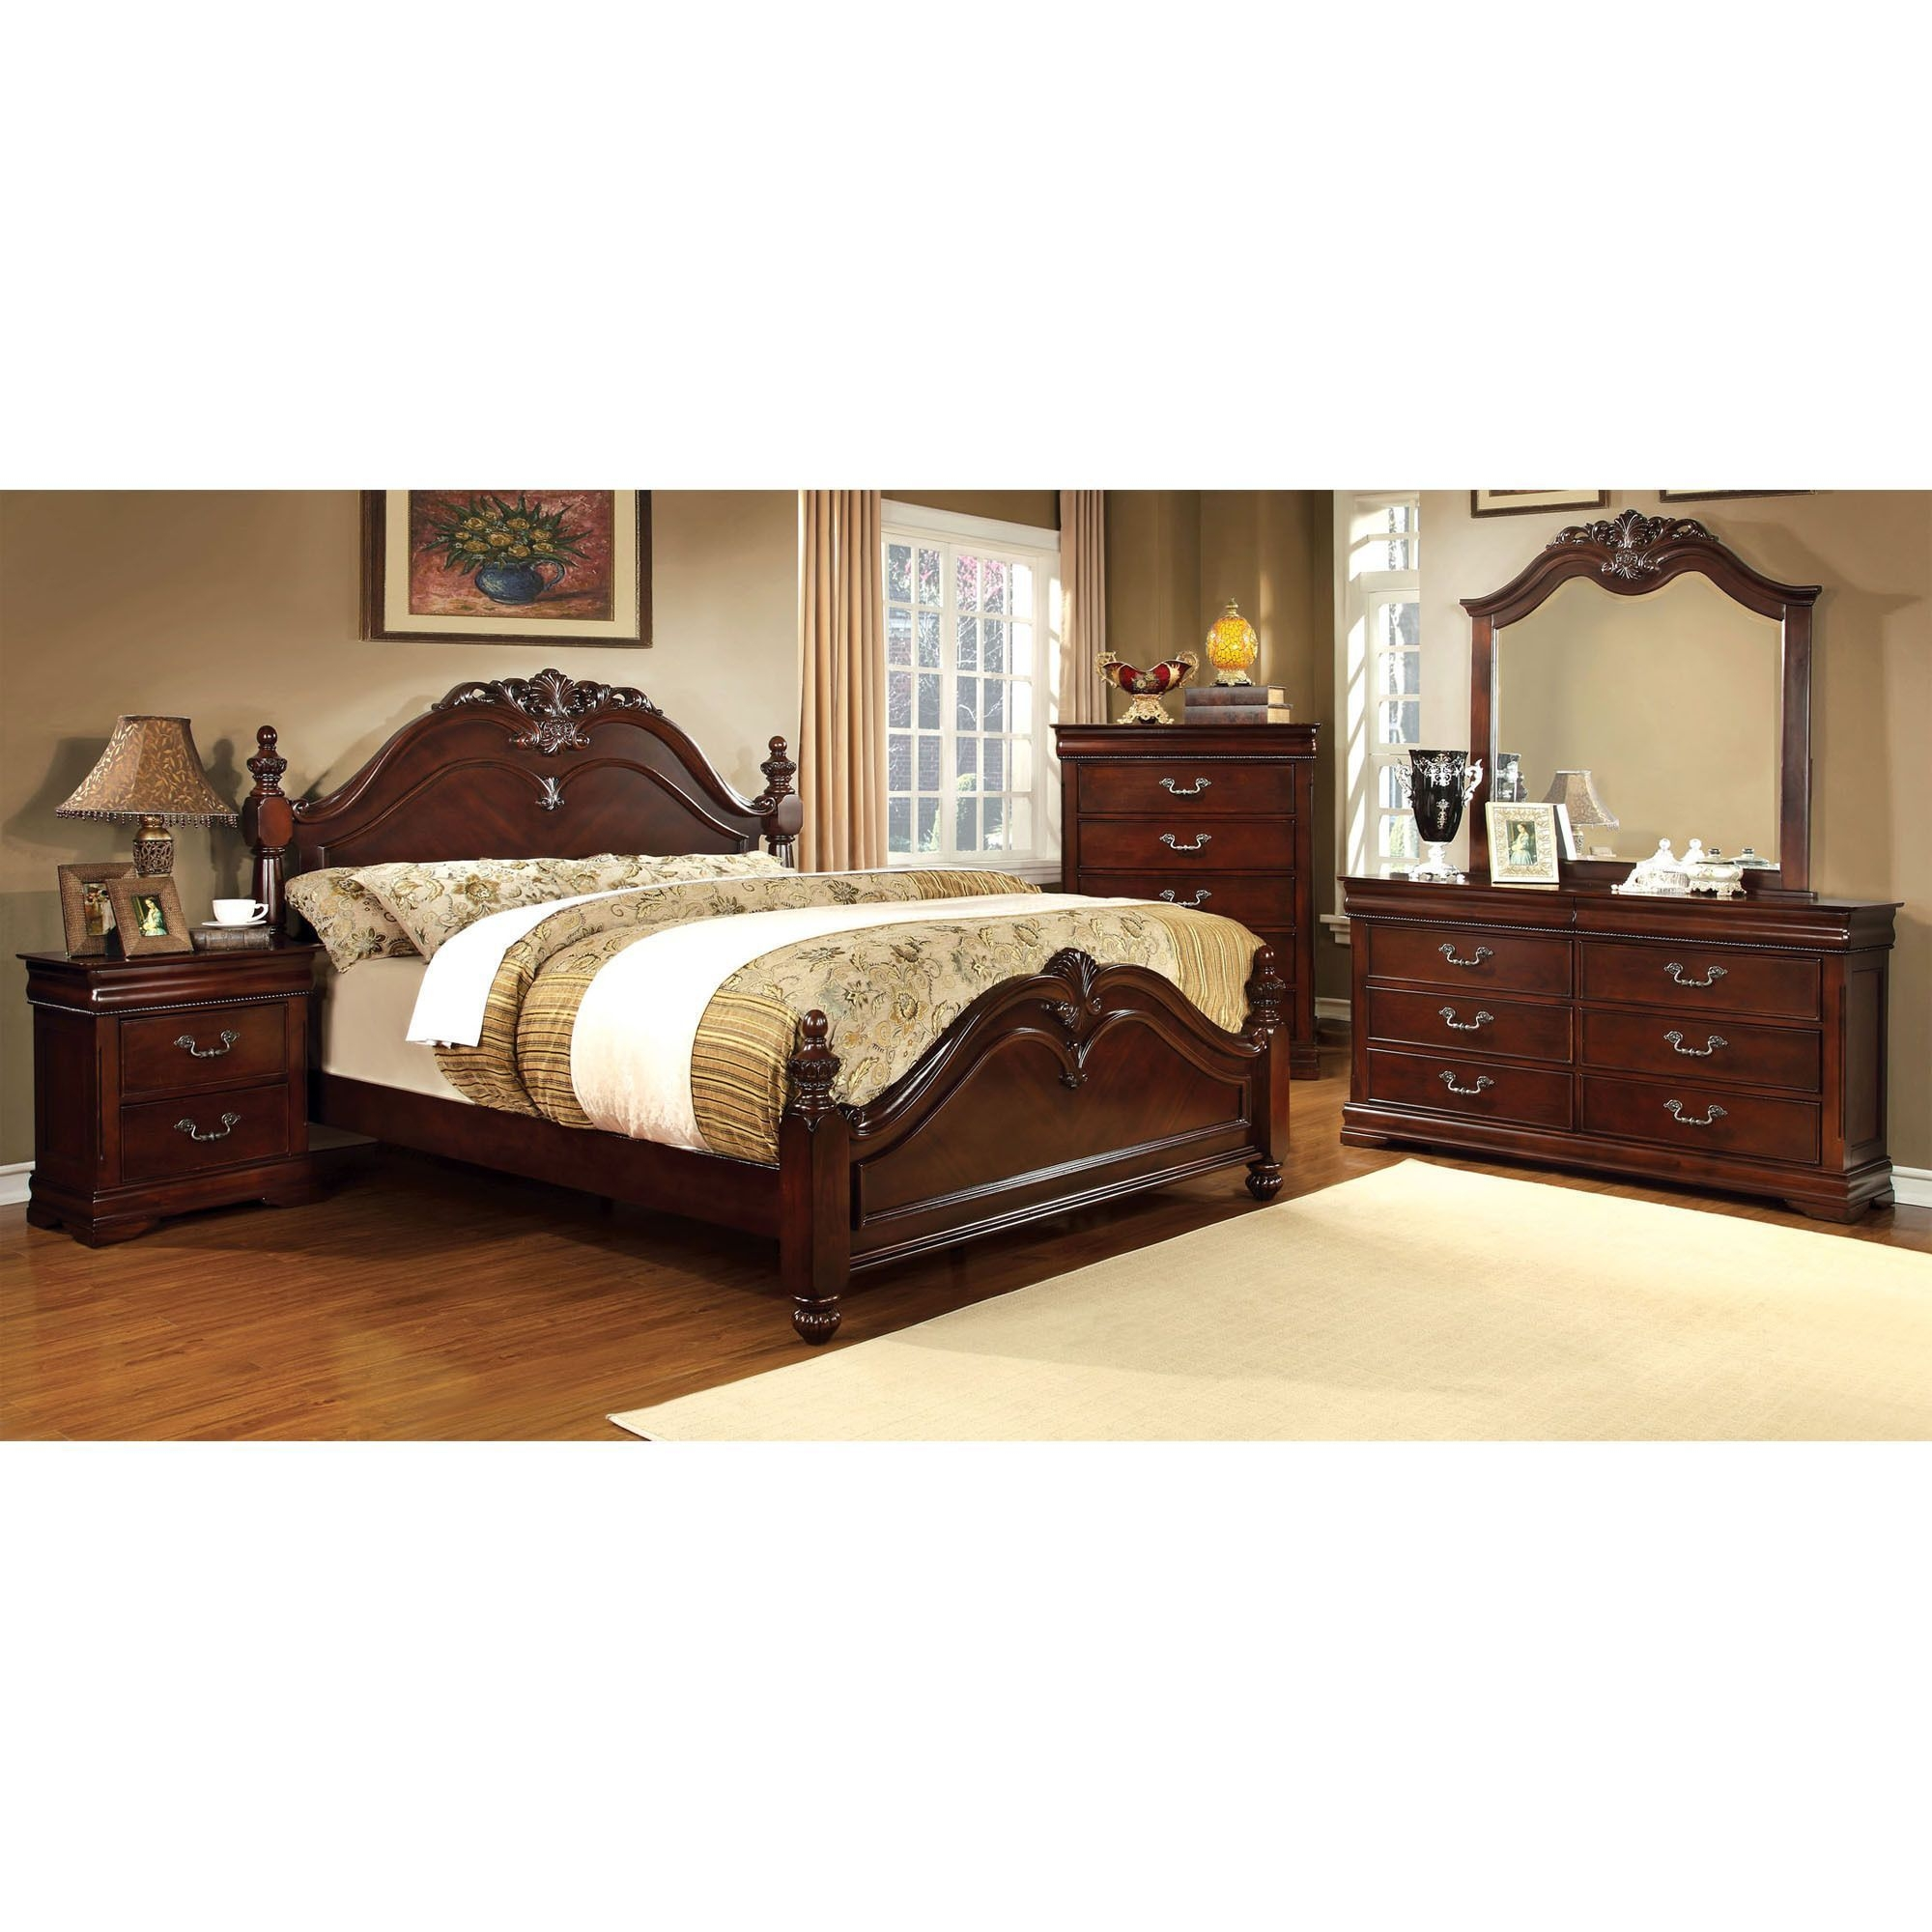 Online Shopping  Bedding Furniture Electronics Jewelry Clothing  More  King Bedroom Sets